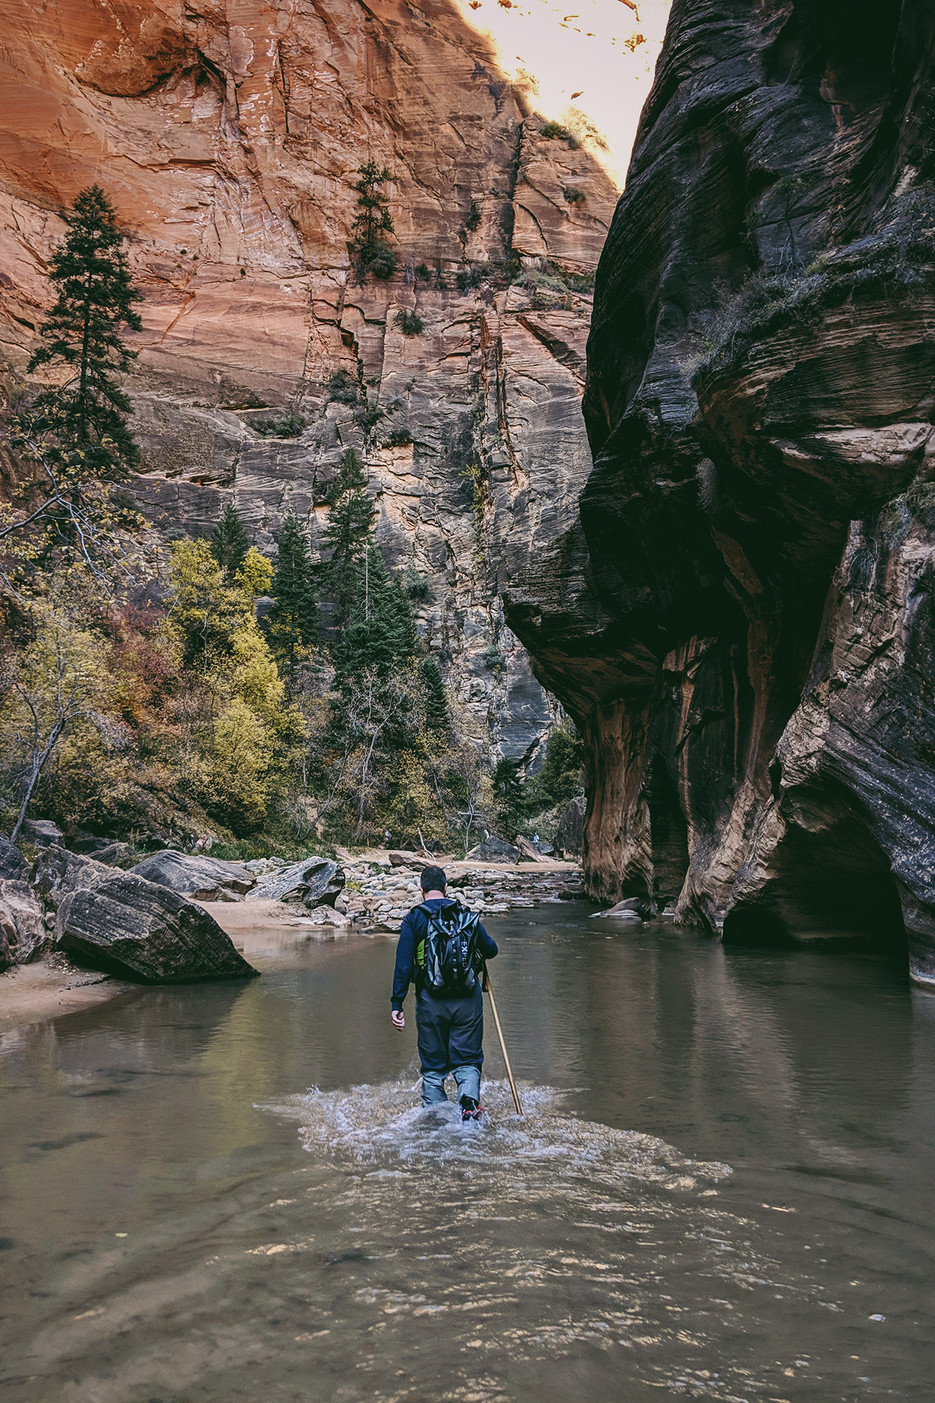 America-National-Park-Zion-Narrows-hikin